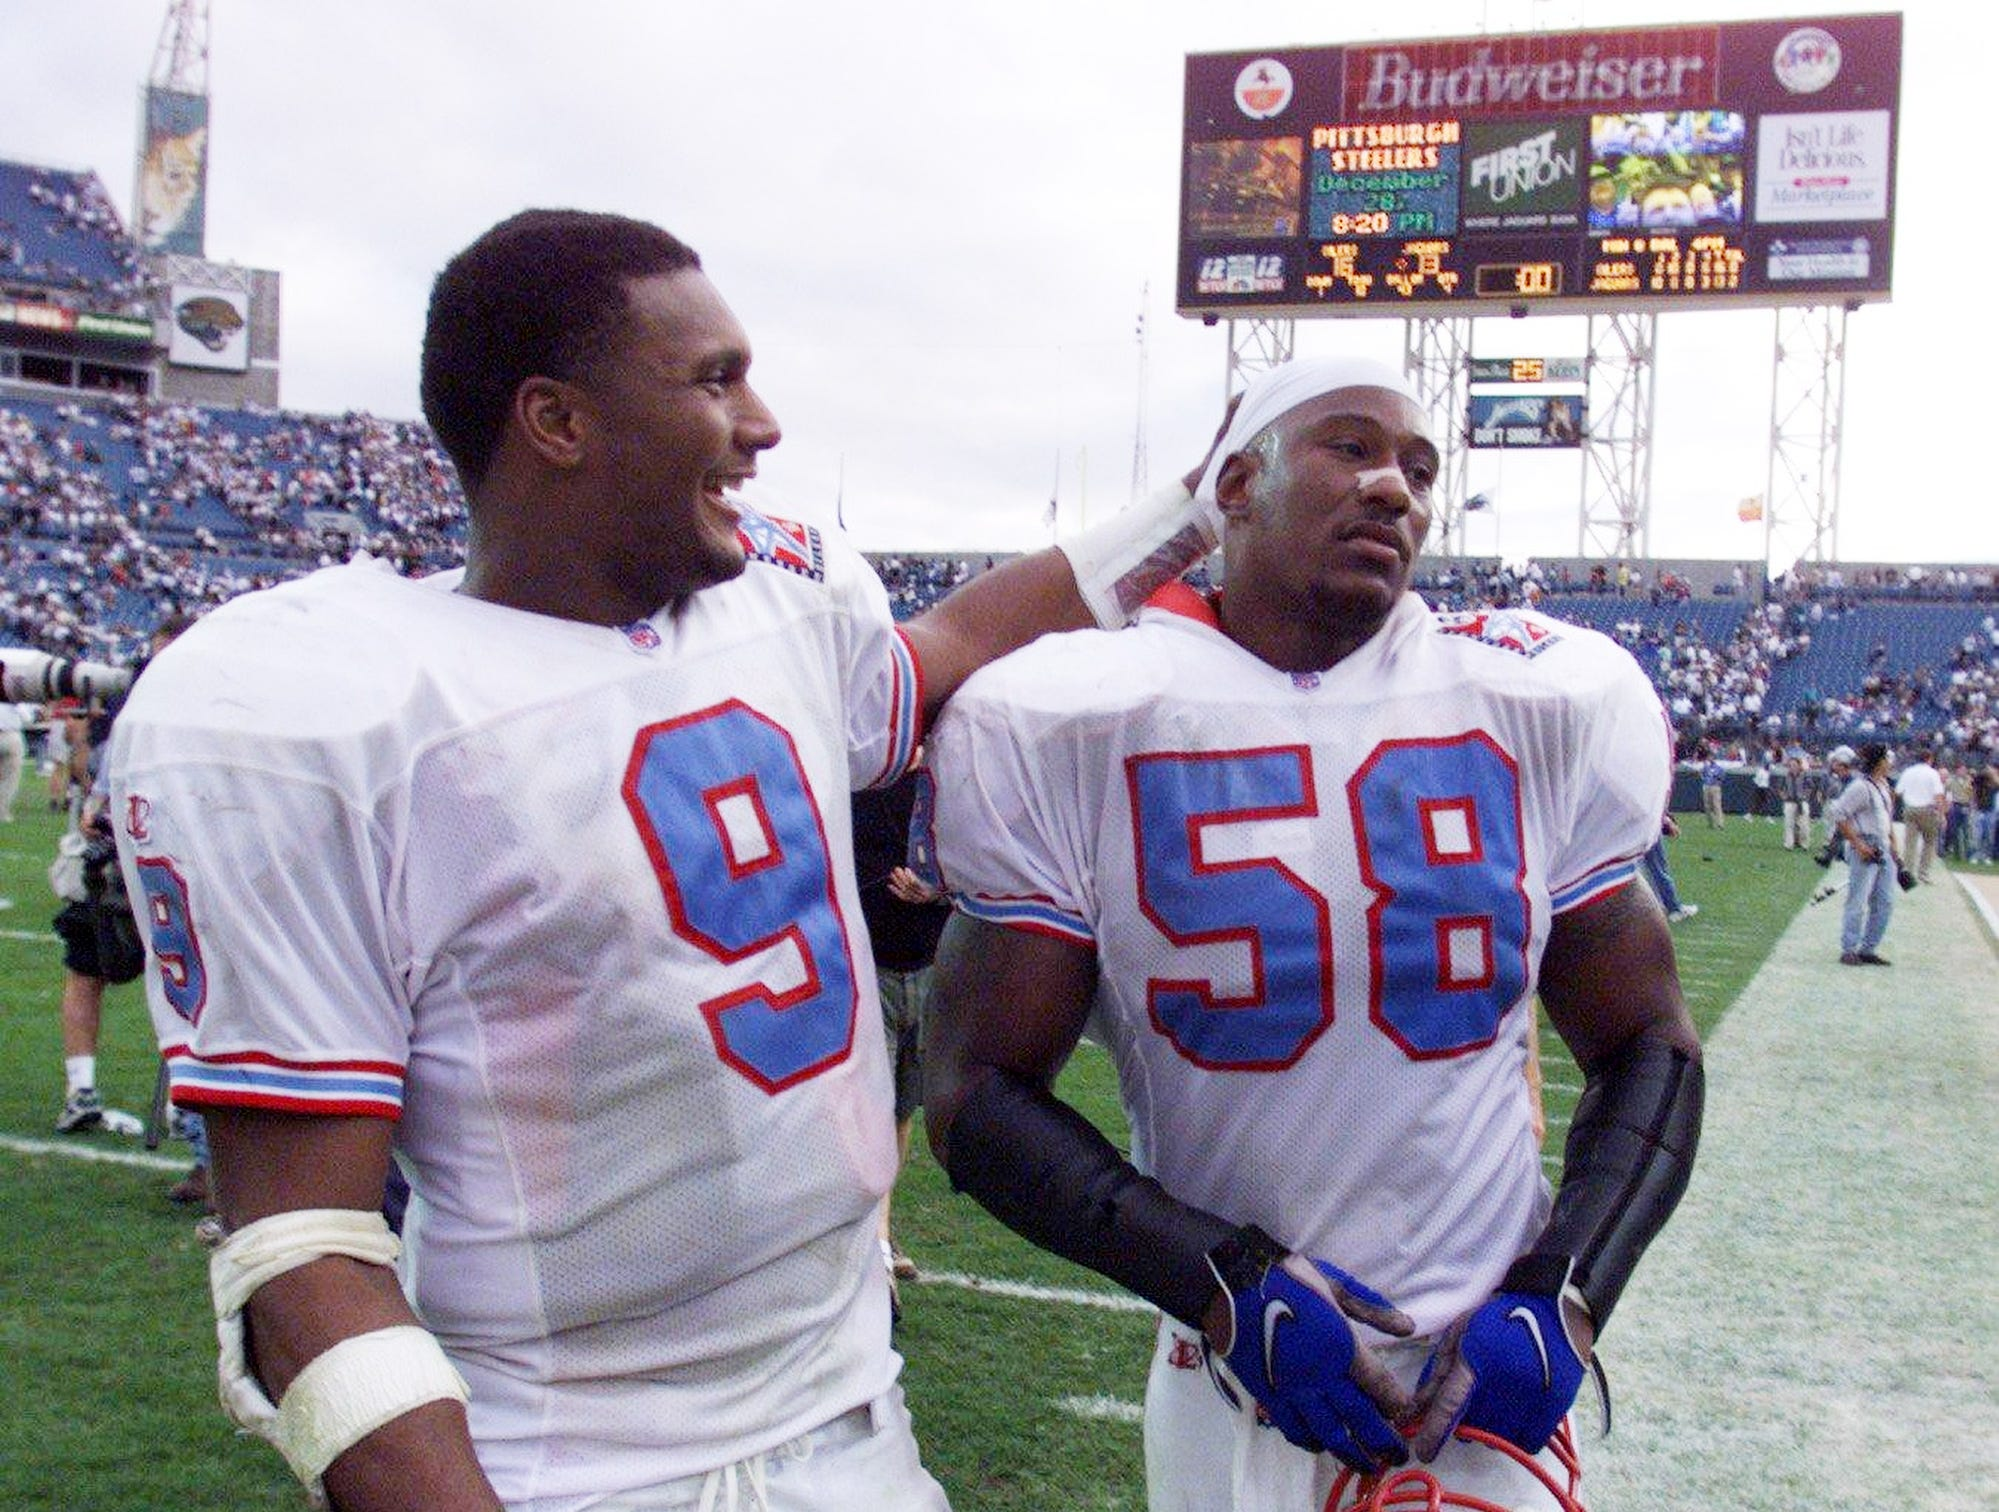 Tennessee Oilers quarterback Steve McNair (9) pats linebacker Joe Bowden on the head after they beating the Jaguars 16 to 13 in Jacksonville Dec. 13, 1998.